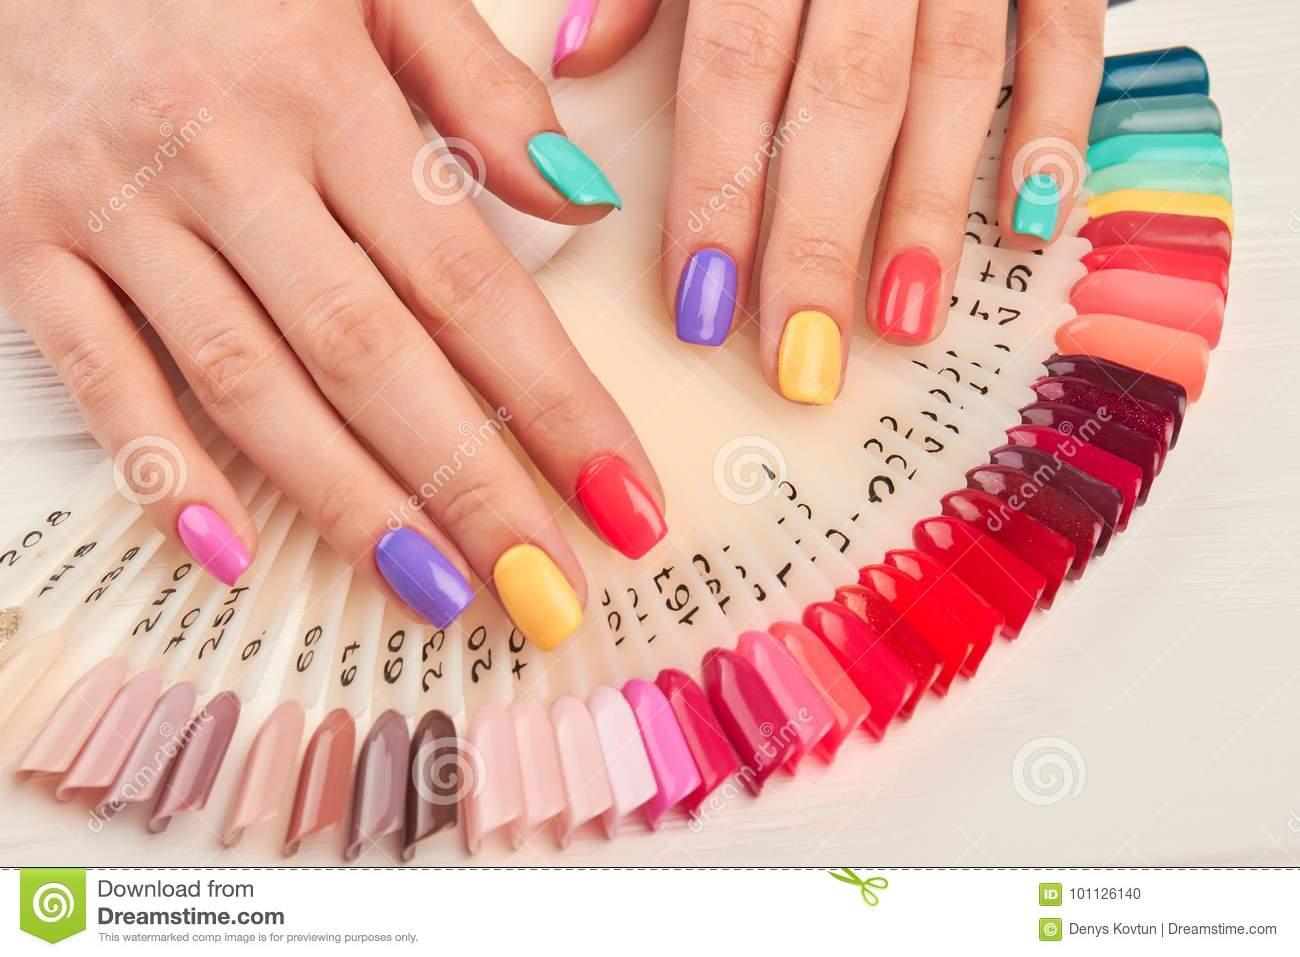 Summer Manicure And Nail Color Samples. Stock Photo - Image of arms ...